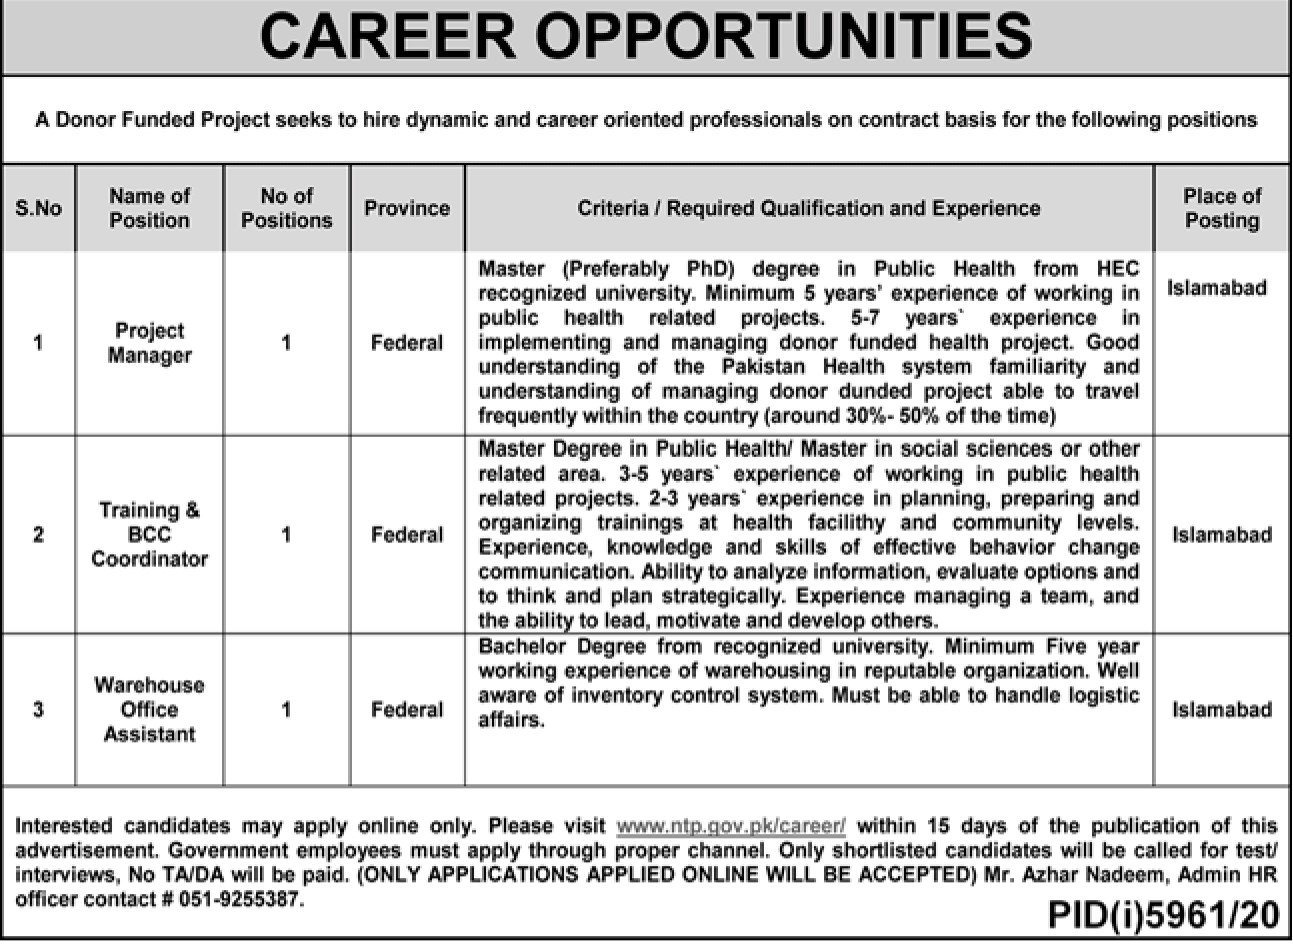 This page is about Donor Funded Project Jobs May 2021 Latest Advertisment. Donor Funded Project invites applications for the posts announced on a contact / permanent basis from suitable candidates for the following positions such as Project Manager, Training & BCC Coordinator, Warehouse Office Assistant. These vacancies are published in Nawaiwaqt Newspaper, one of the best News paper of Pakistan. This advertisement has pulibhsed on 02 May 2021 and Last Date to apply is 16 May 2021.